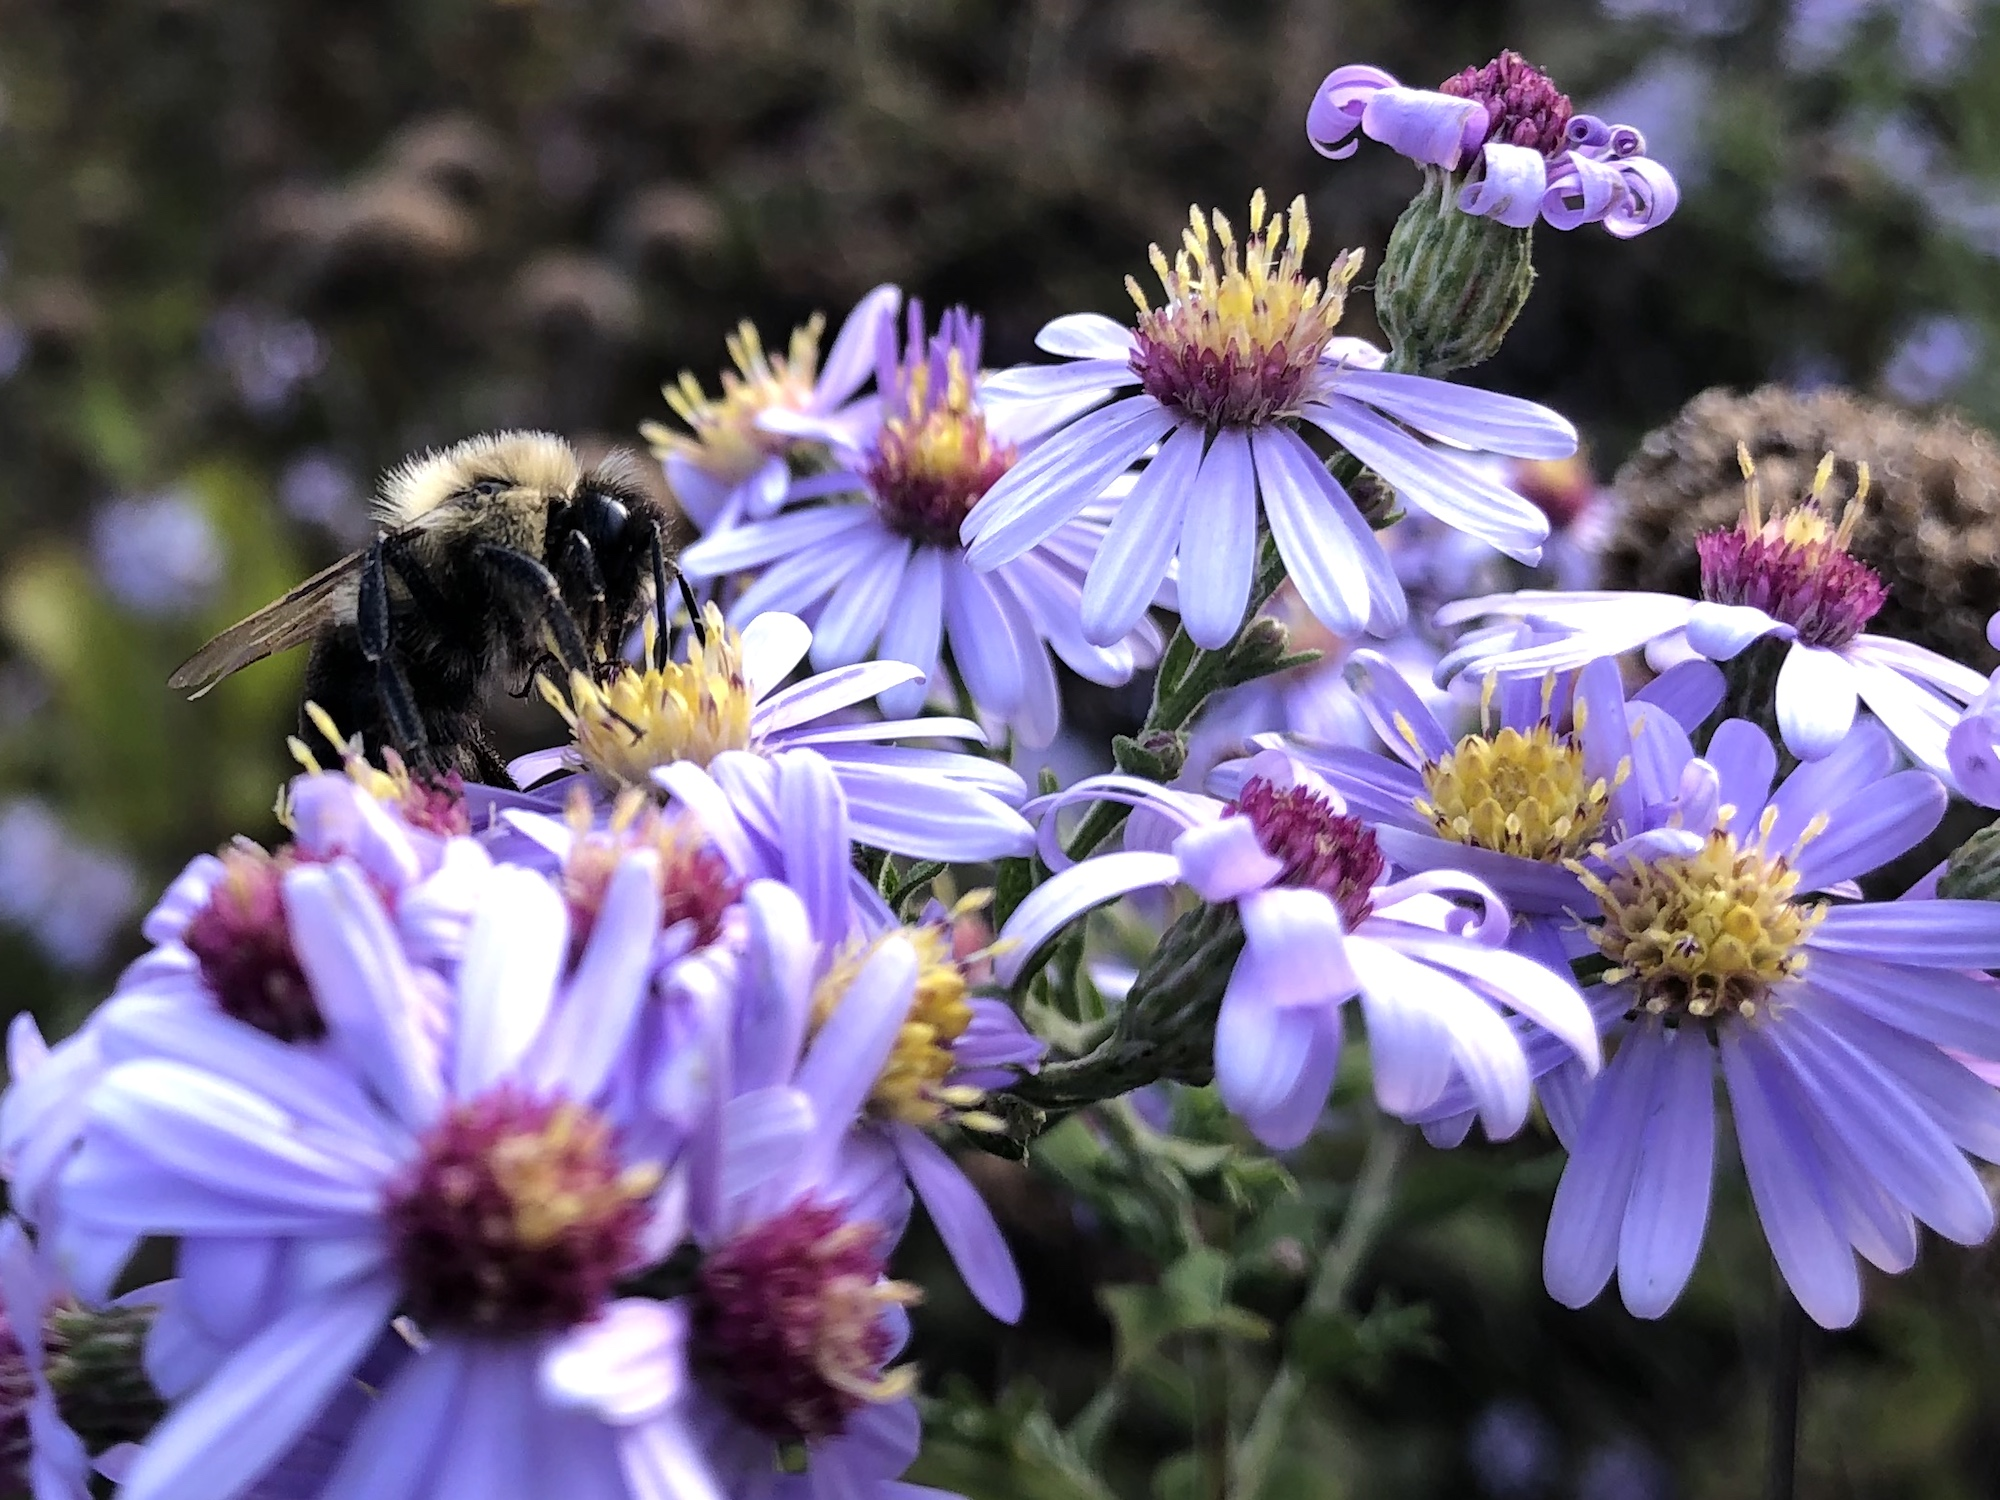 Bumblebee on aster on bank of retaining pond on October 6, 2020.